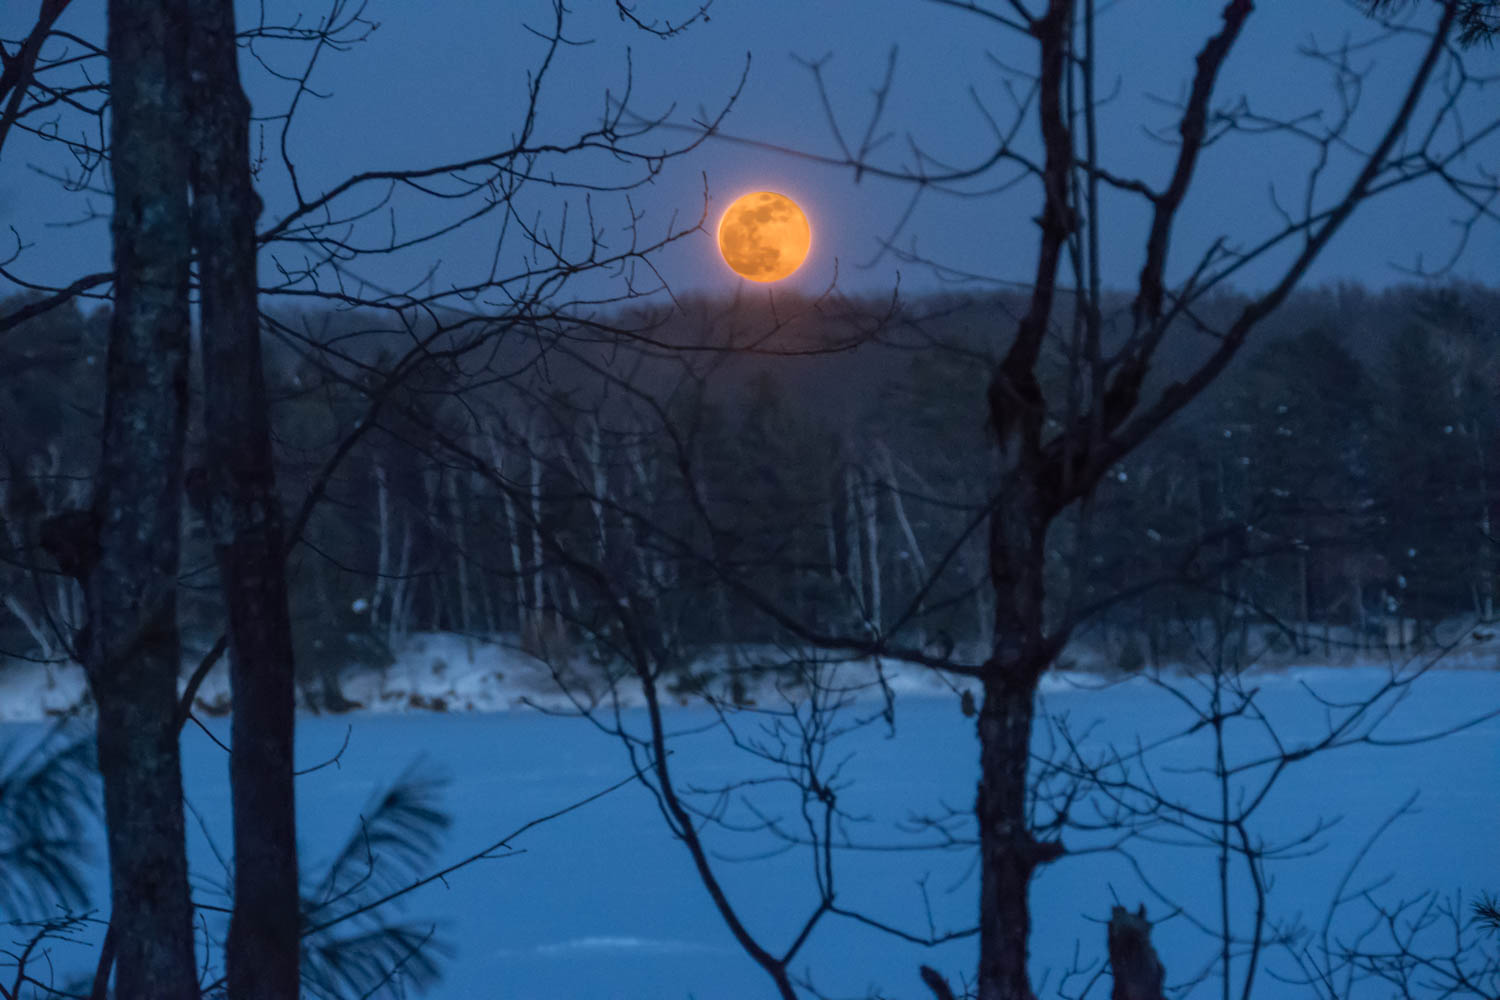 Full moon rising over snowy lake